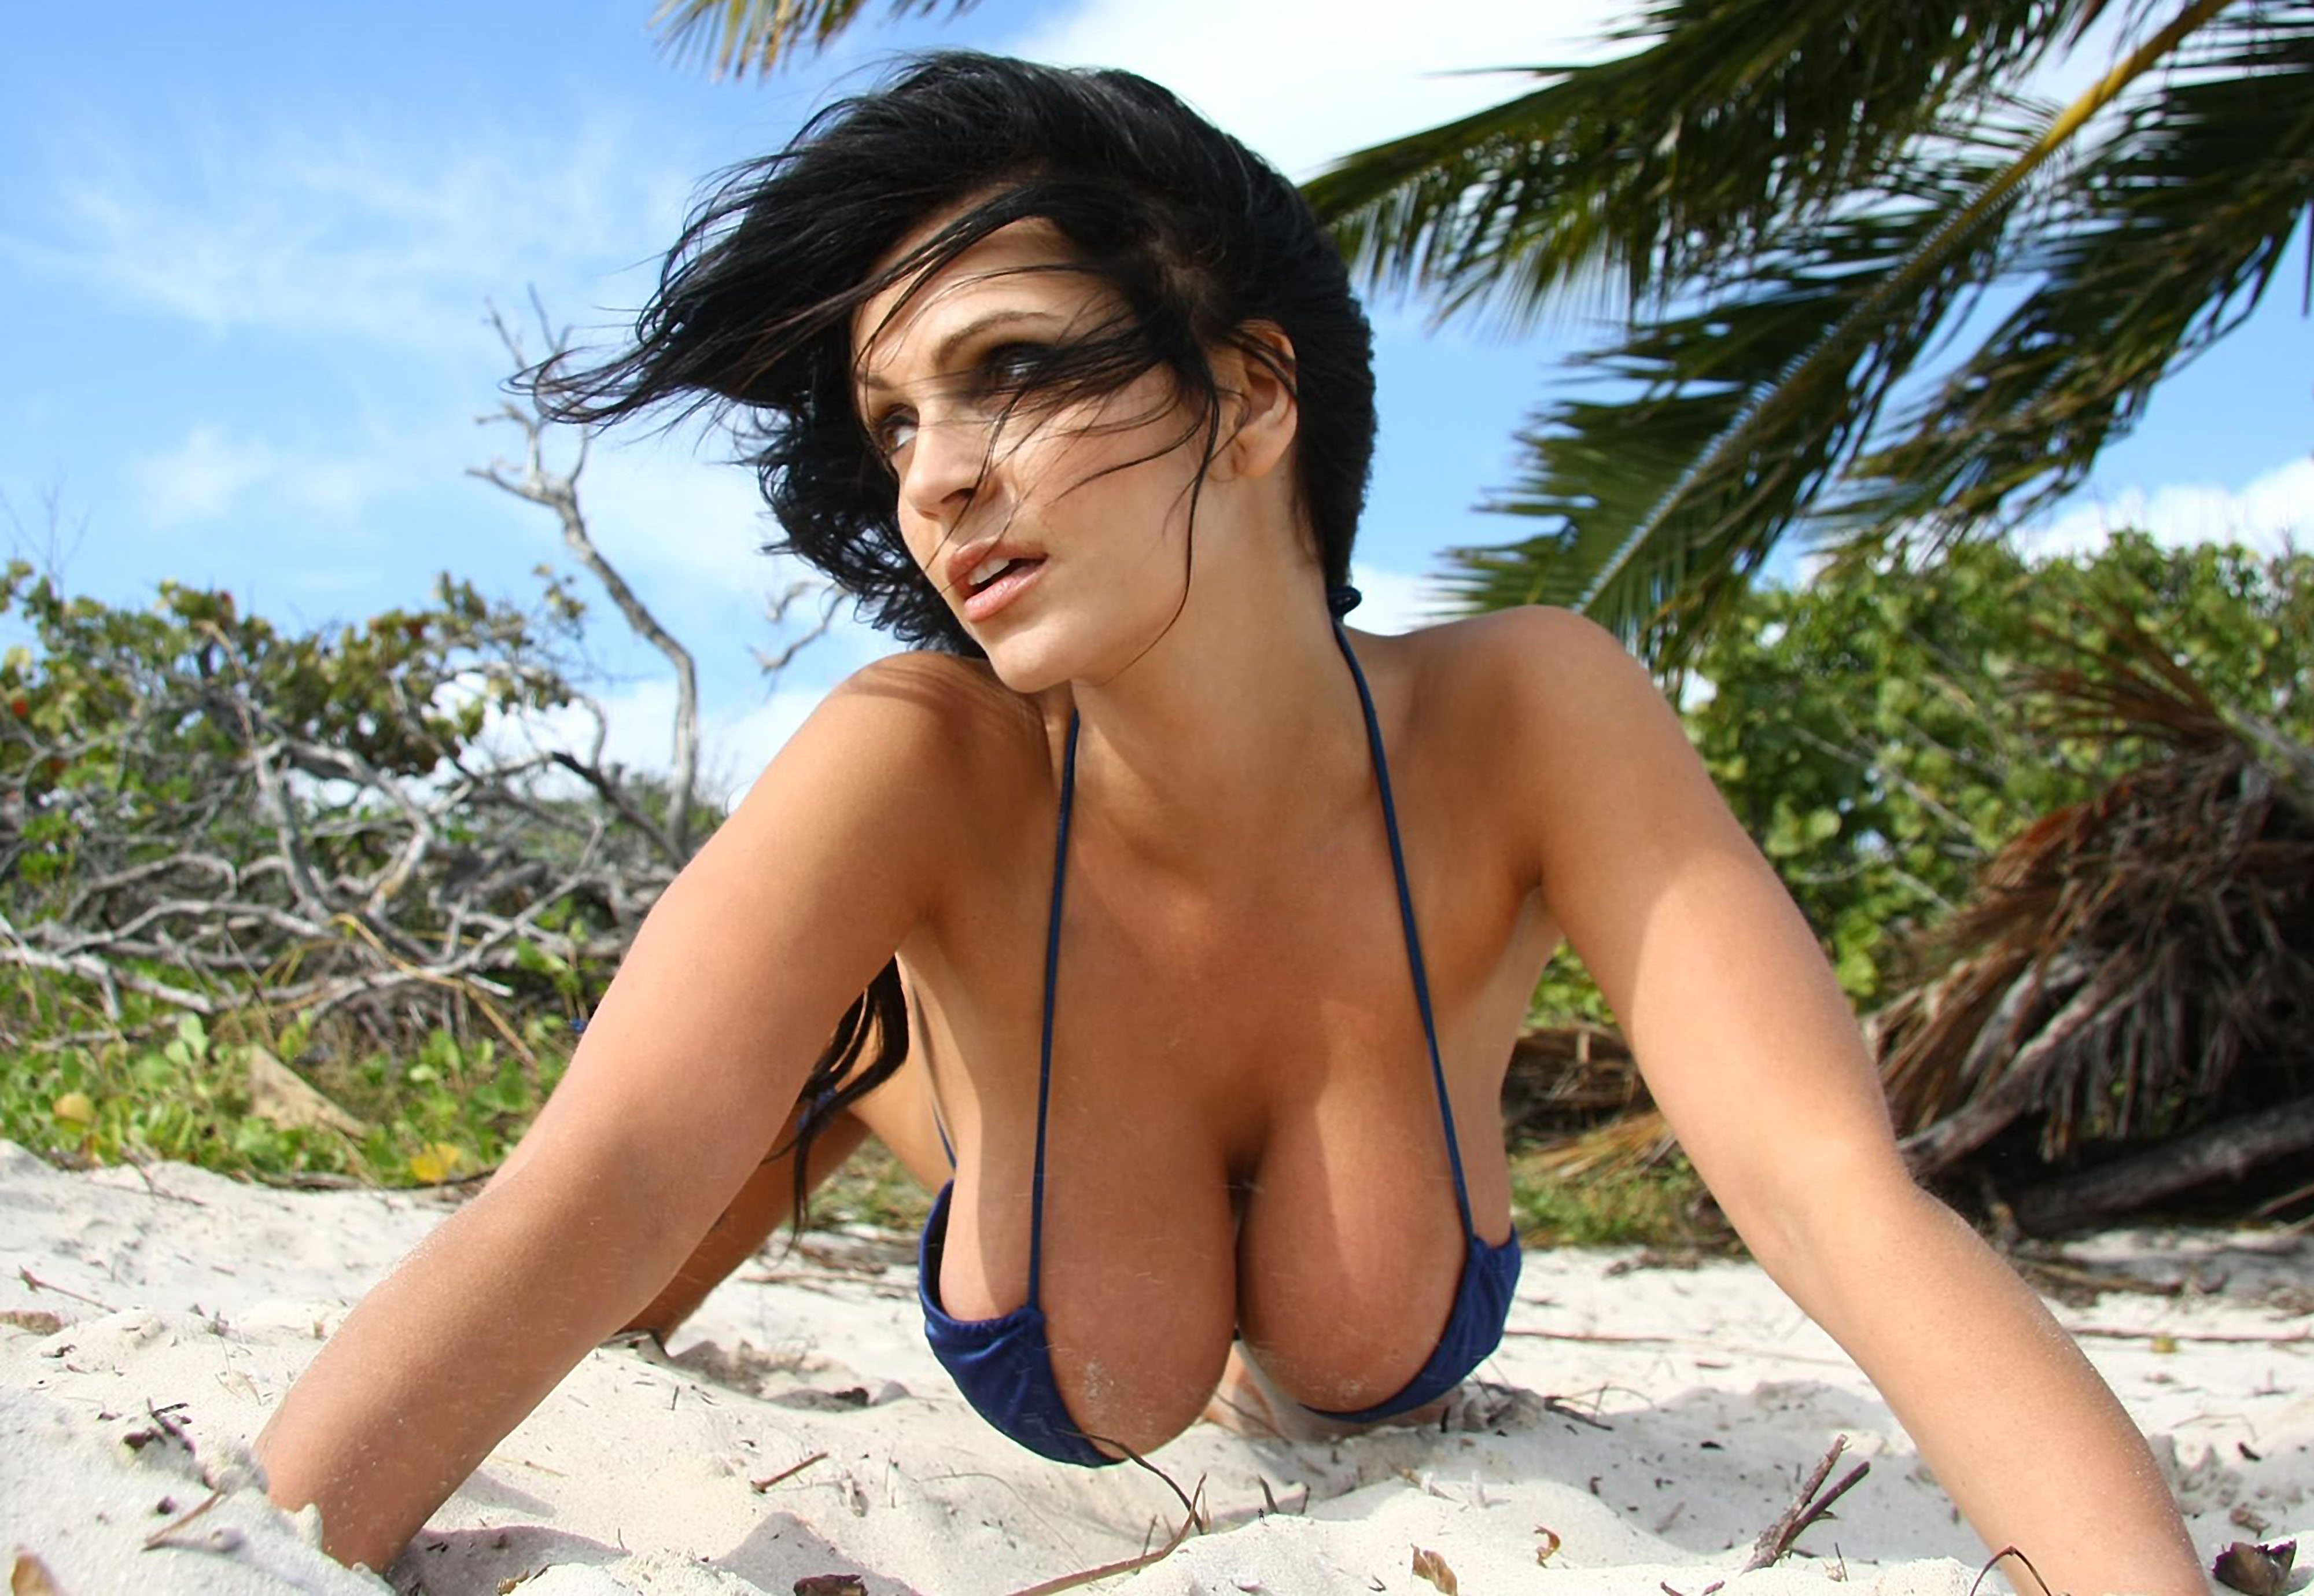 Hot LOVE giants boobs pictures this